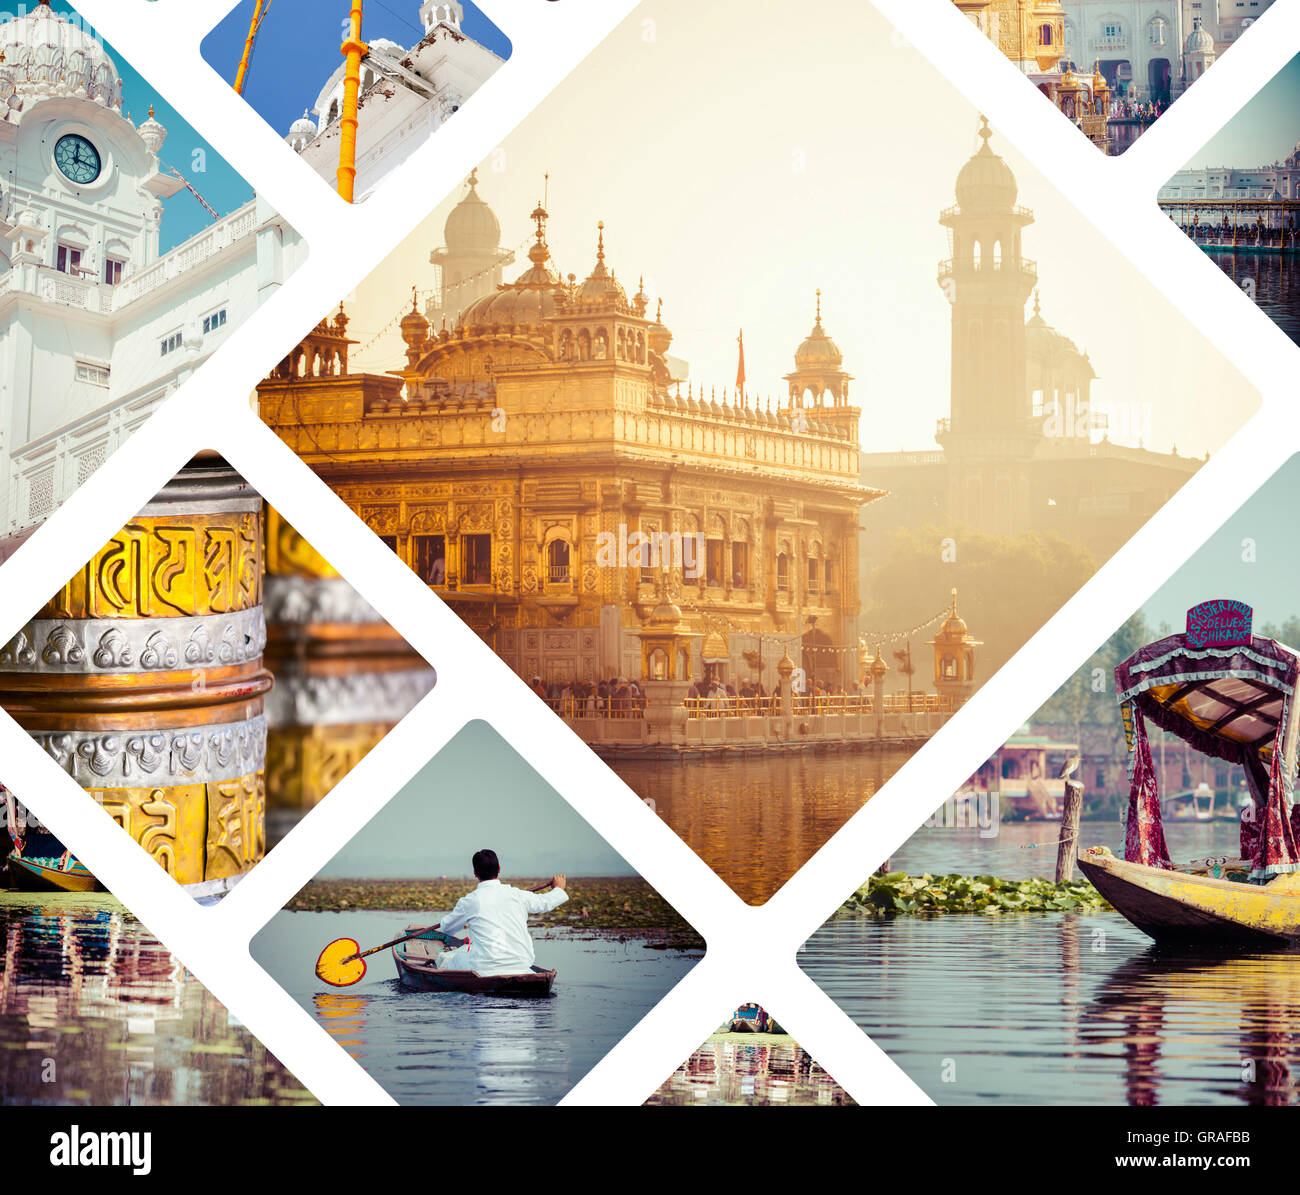 Collage Of India Images Travel Background My Photos Stock Photo Alamy